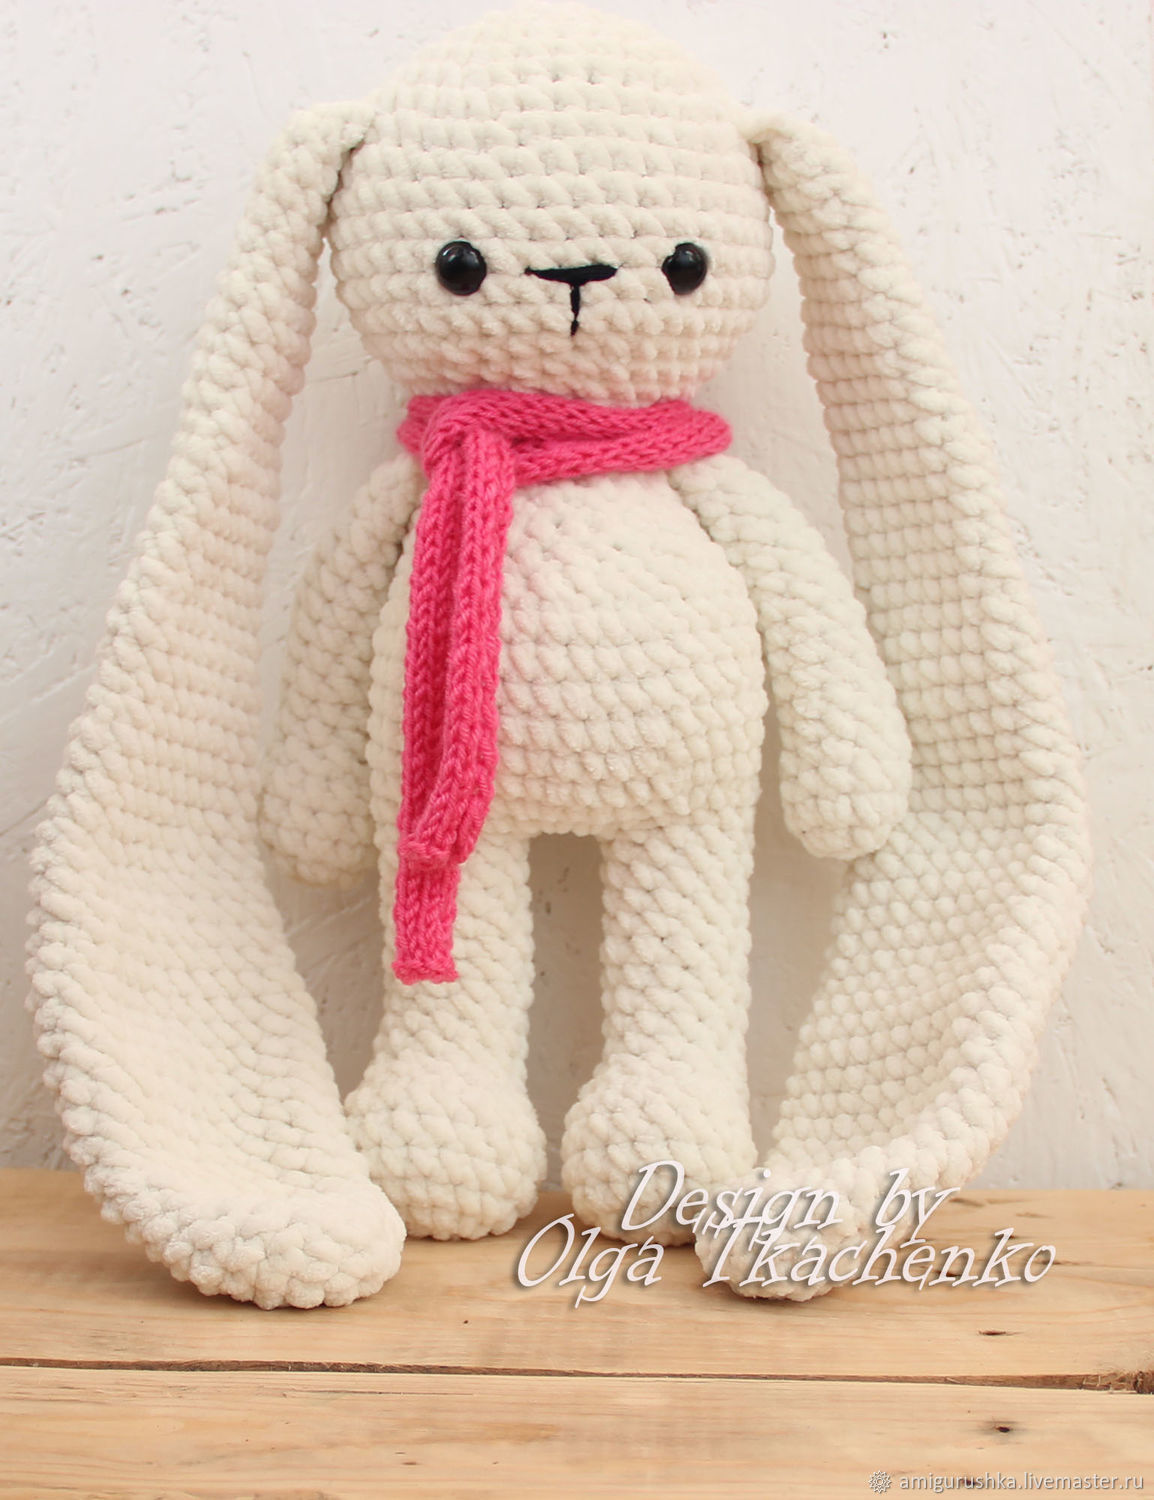 amigurumi to buy, buy amigurumi toy, crochet Bunny, crochet, knit Bunny with long ears, knitted plush Bunny, knitted Bunny large, buy knitted rabbit, knitted toys photo